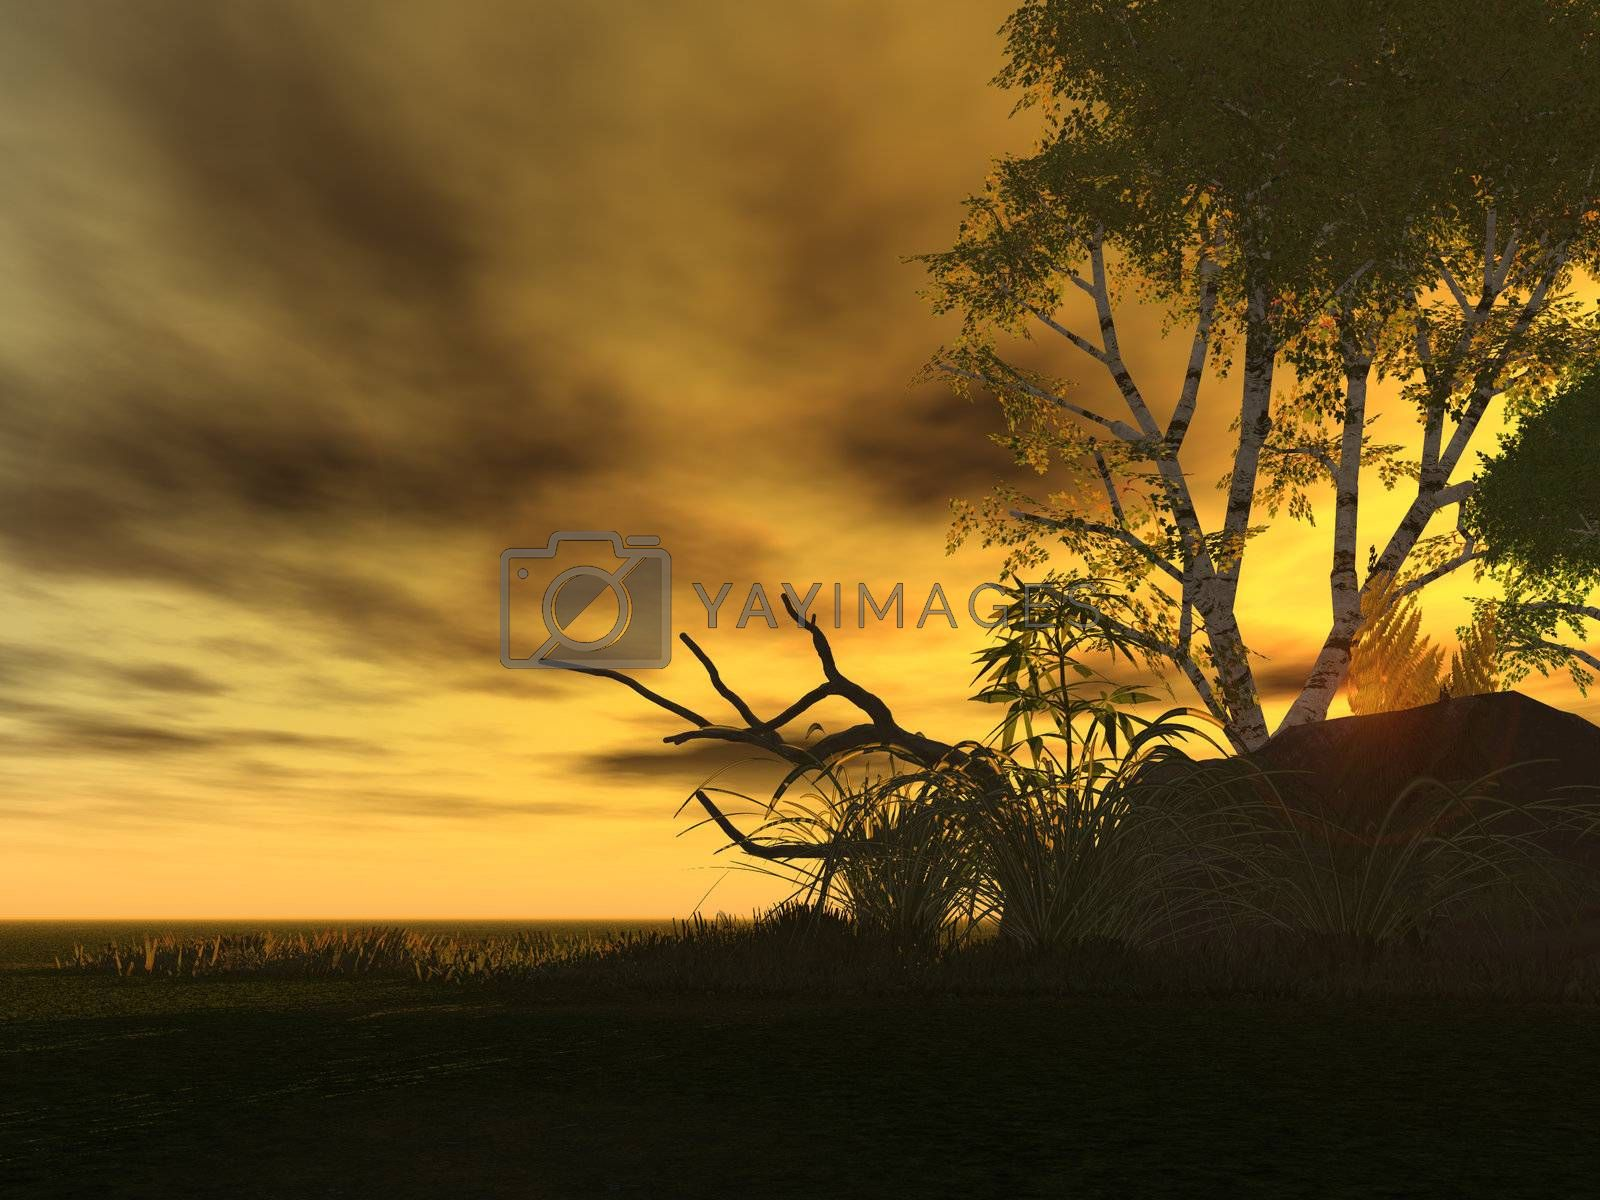 Royalty free image of sunrise by drizzd